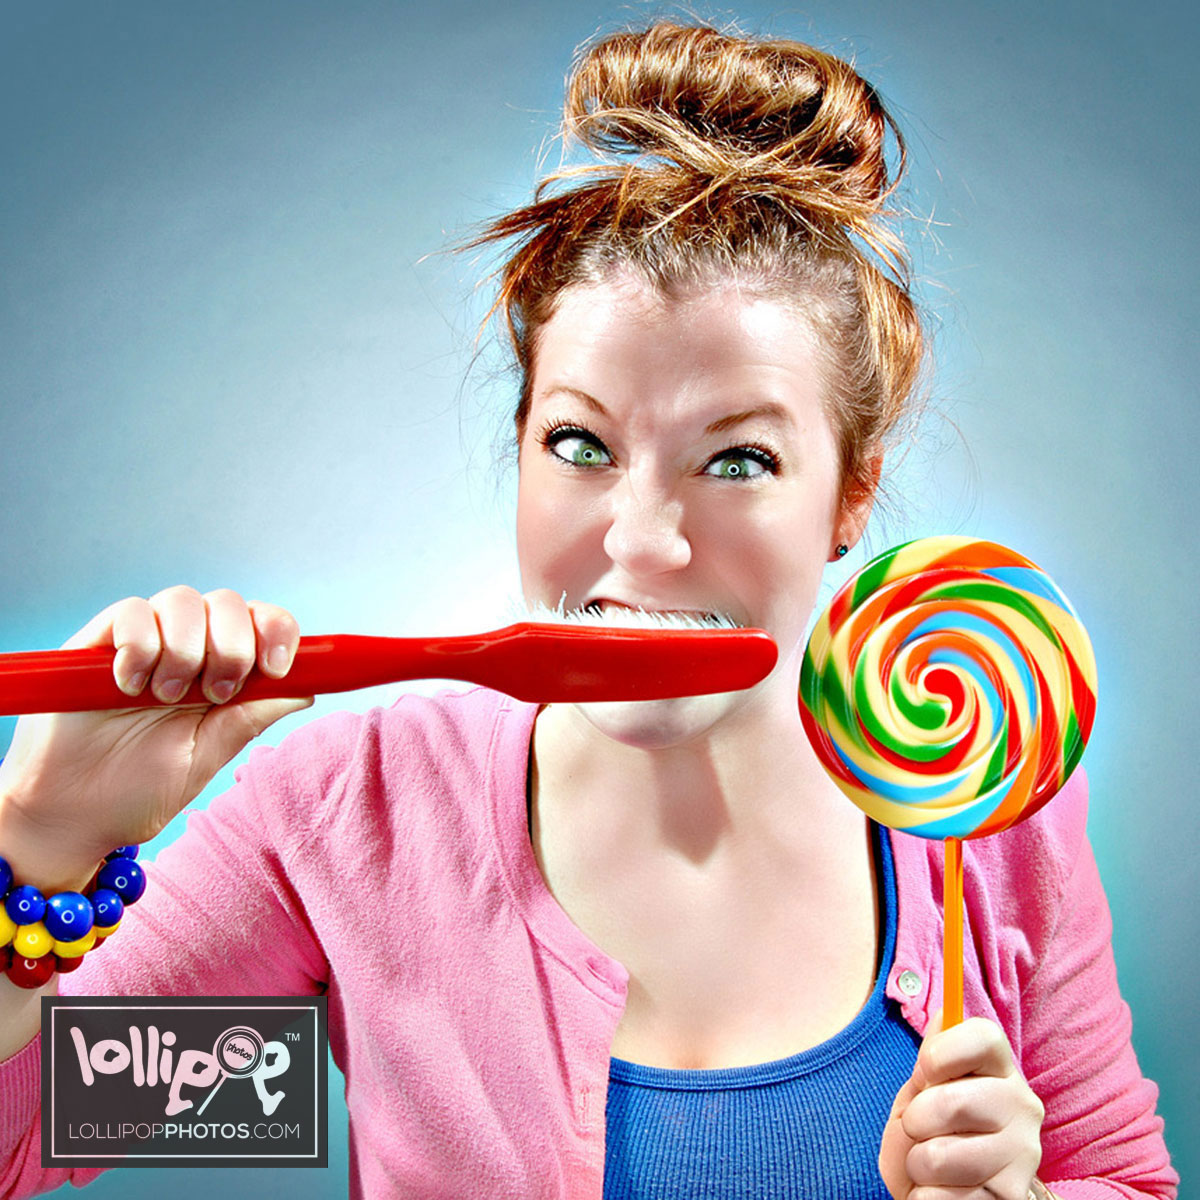 msdig-nora-canfield-lollipop-photos-411.jpg